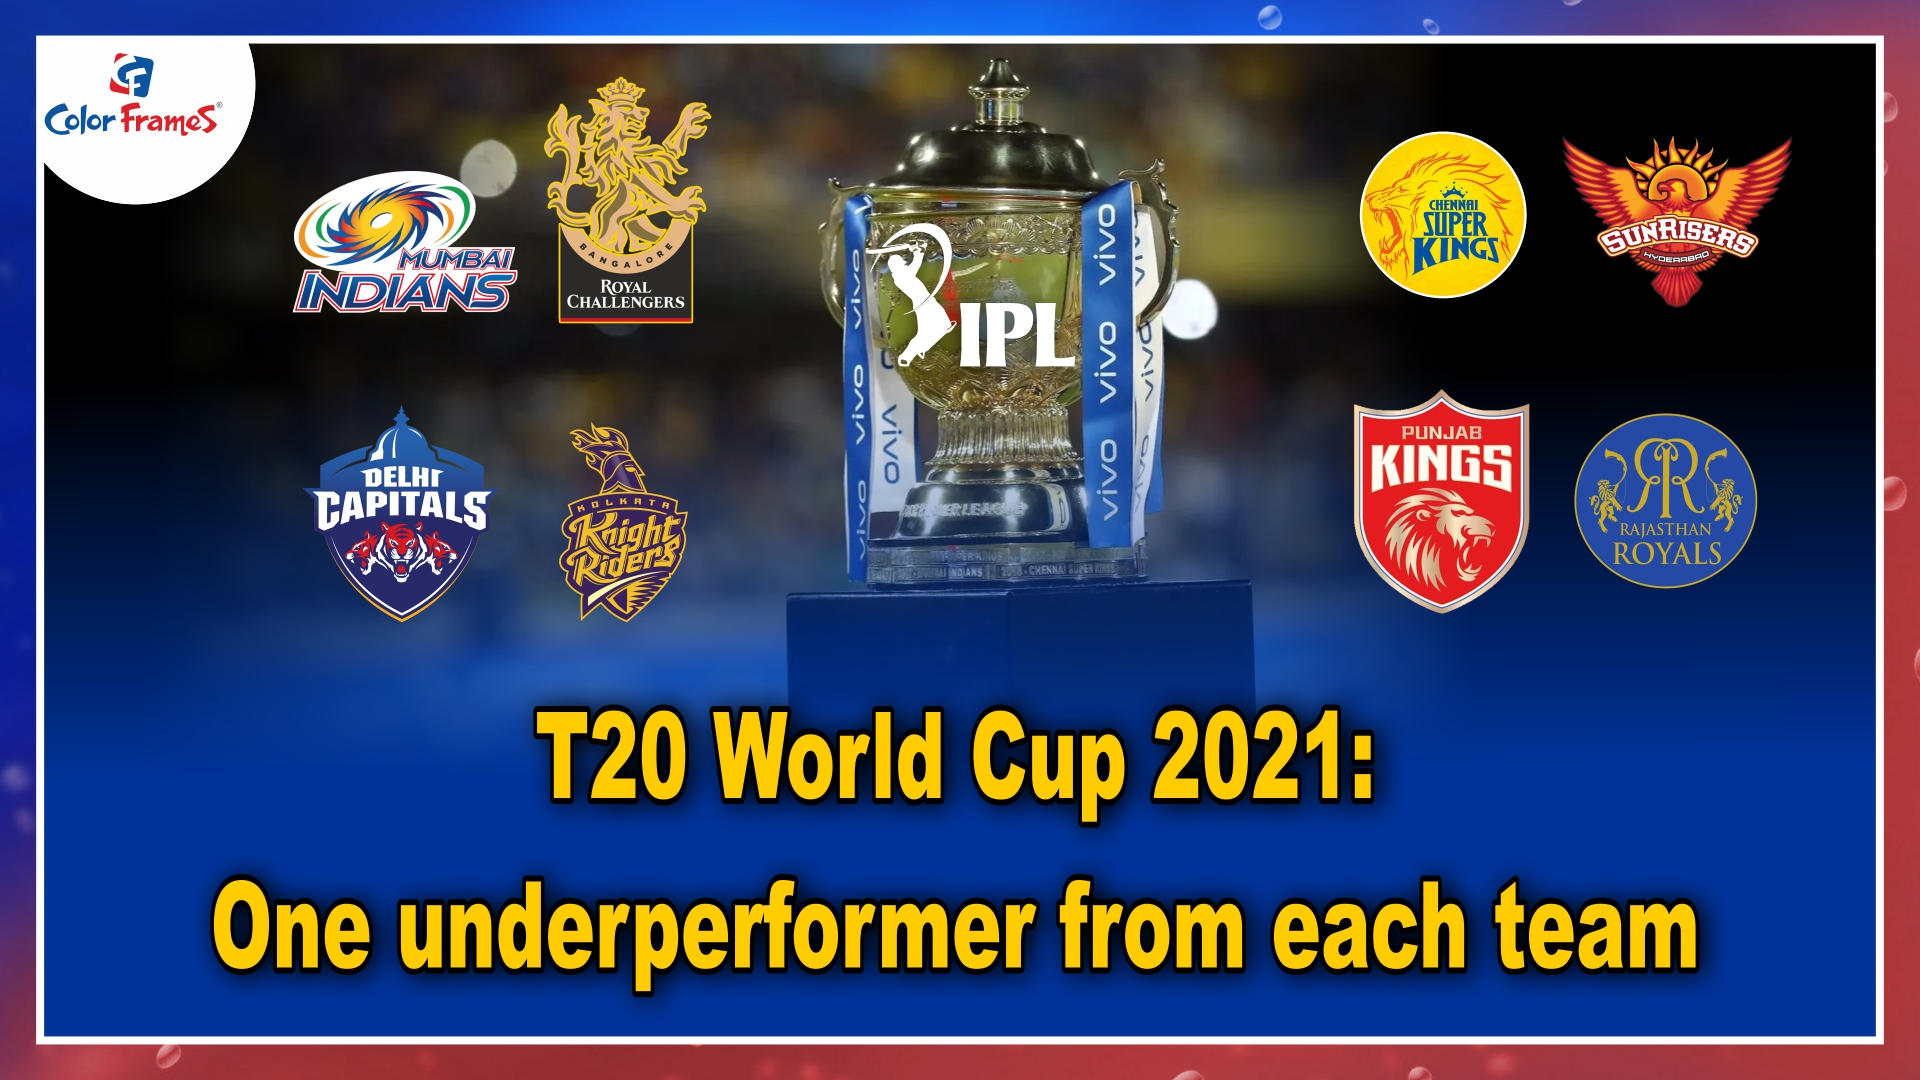 T20 World Cup 2021: One underperformer from each team